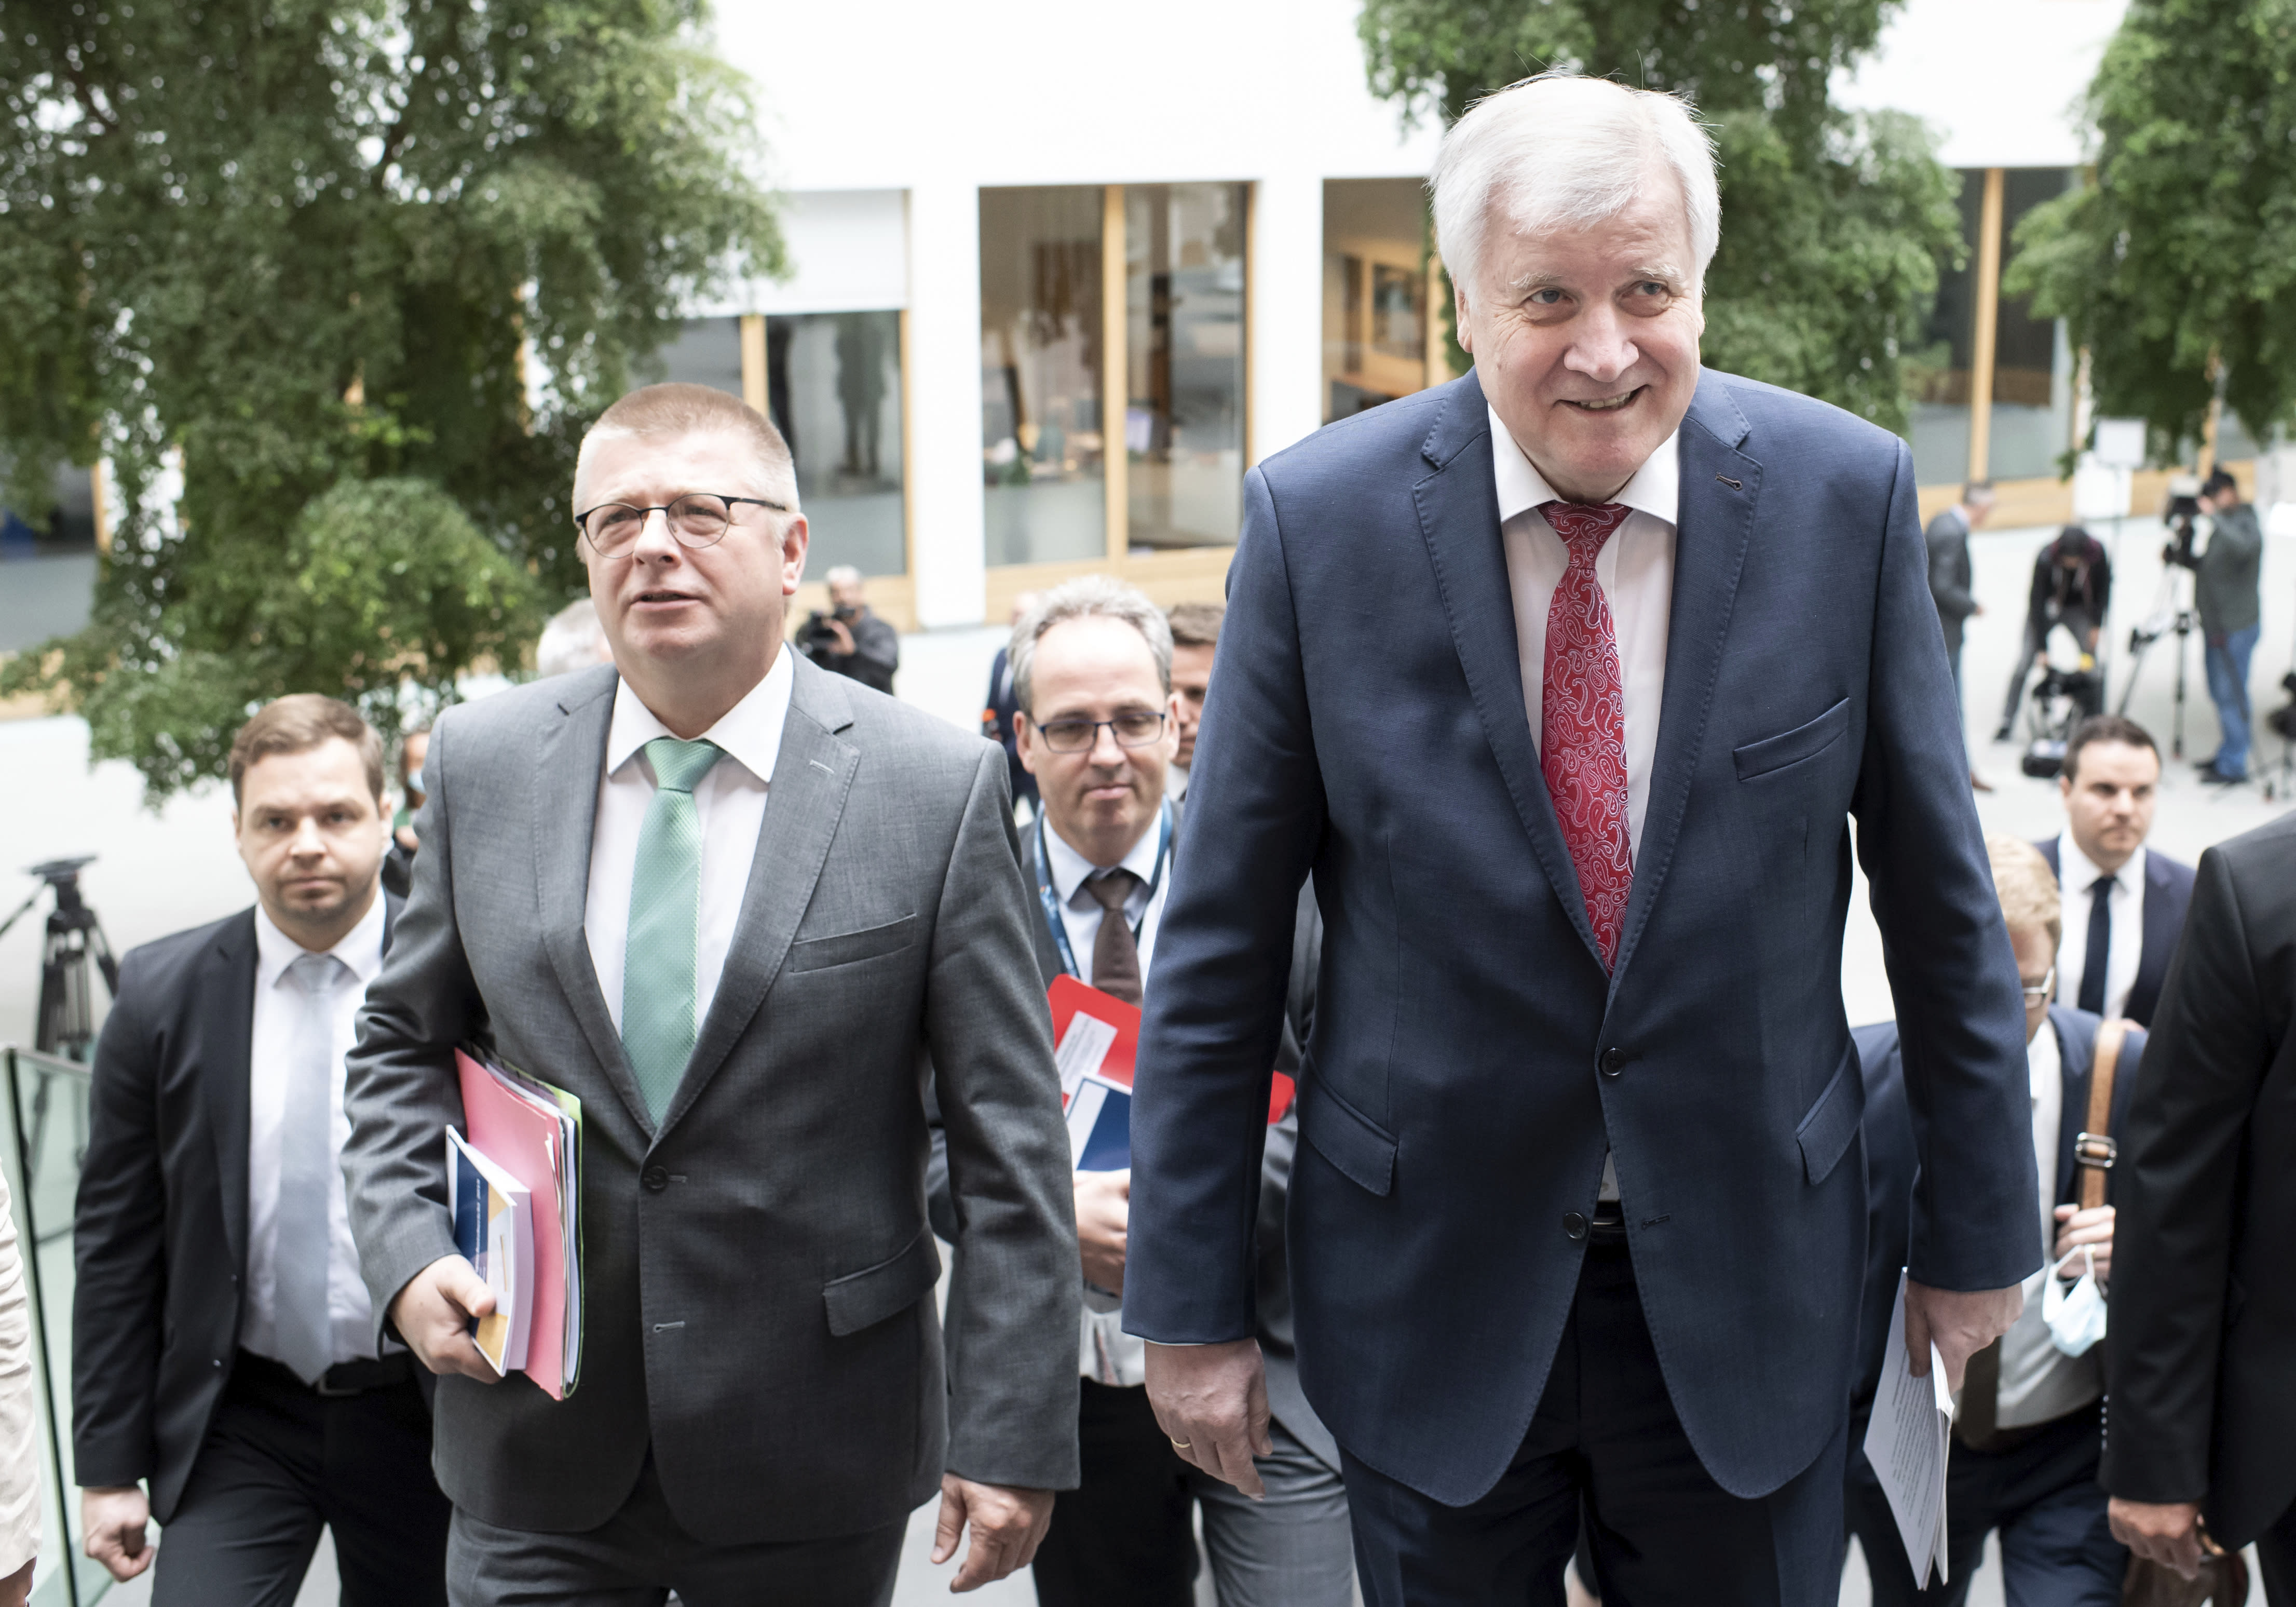 Horst Seehofer (CSU), Federal Minister of the Interior, Homeland and Construction, and Thomas Haldenwang, President of the Federal Office for the Protection of the Constitution (BfV), from right, come to the presentation of the 2019 Report on the Protection of the Constitution at the Federal Press Conference. (Bernd von Jutrczenka/dpa via AP)